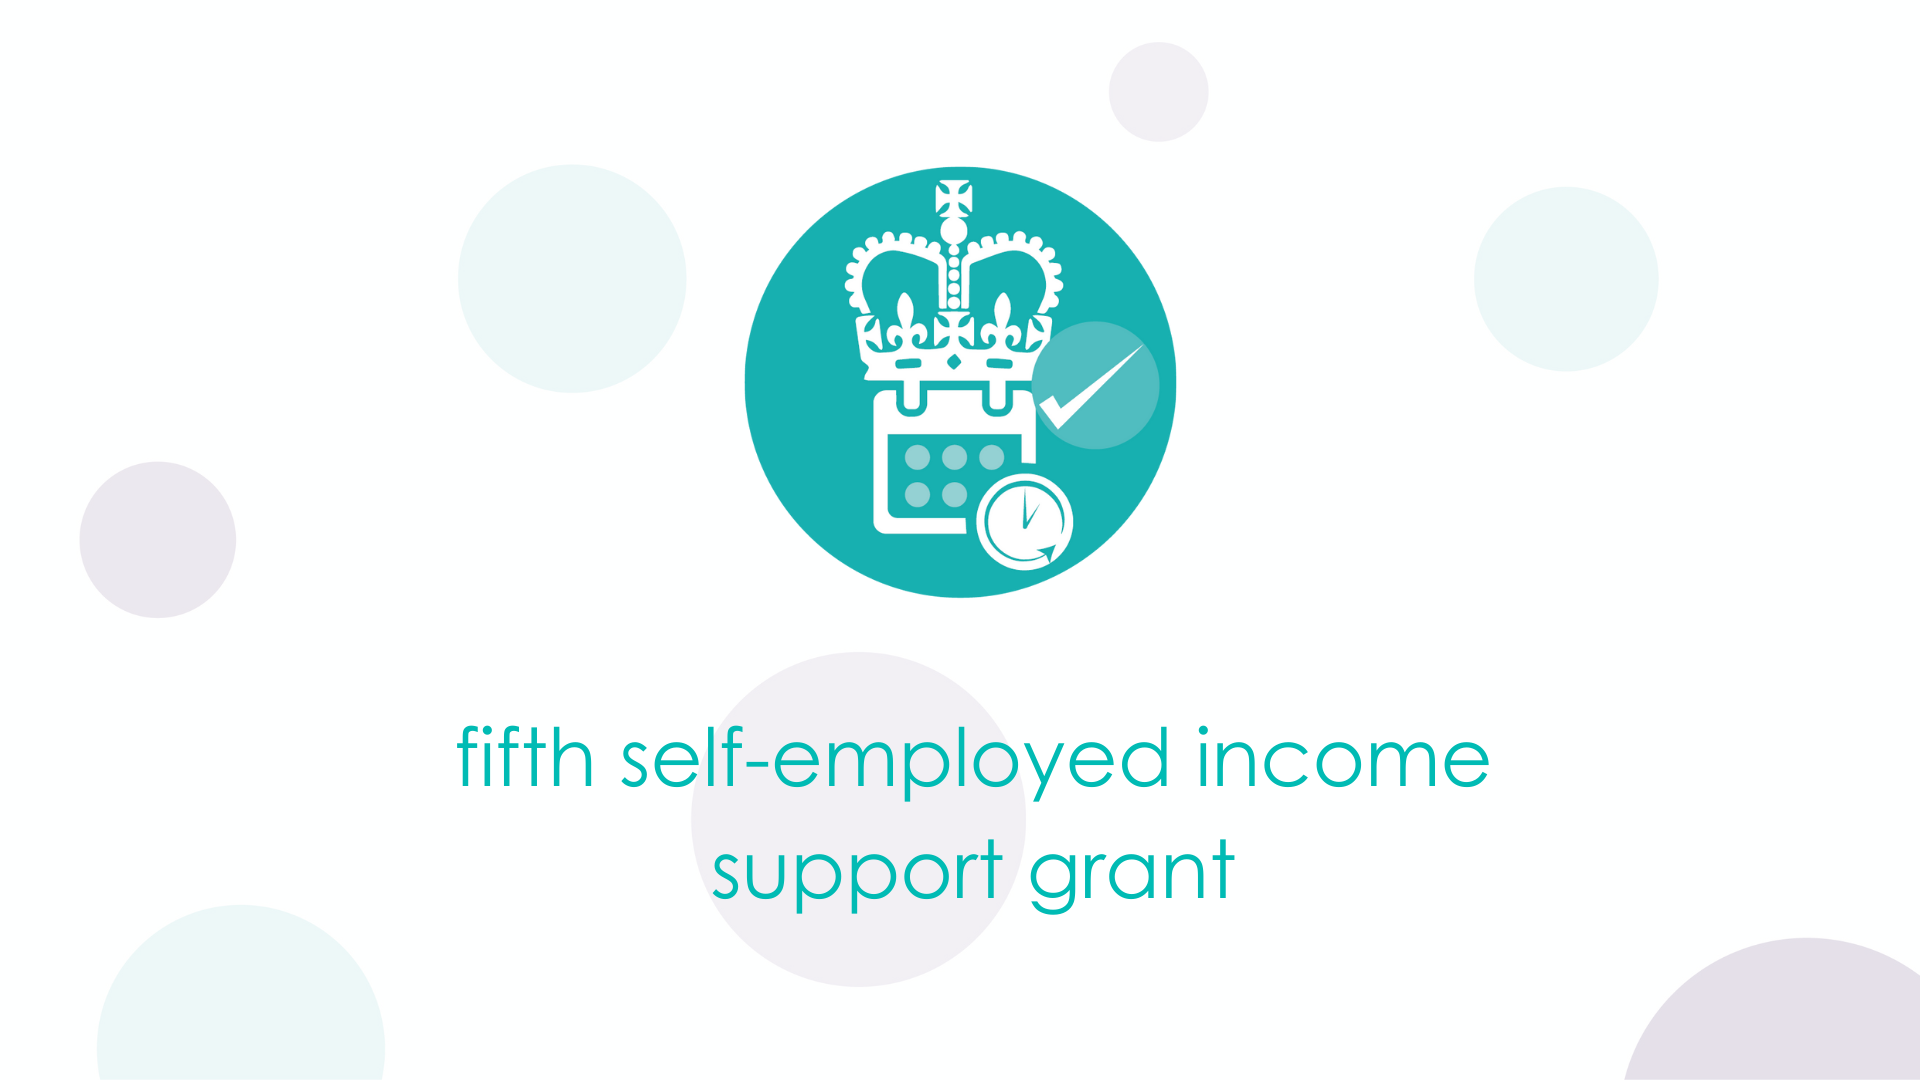 fifth self-employed income support grant to be paid in July